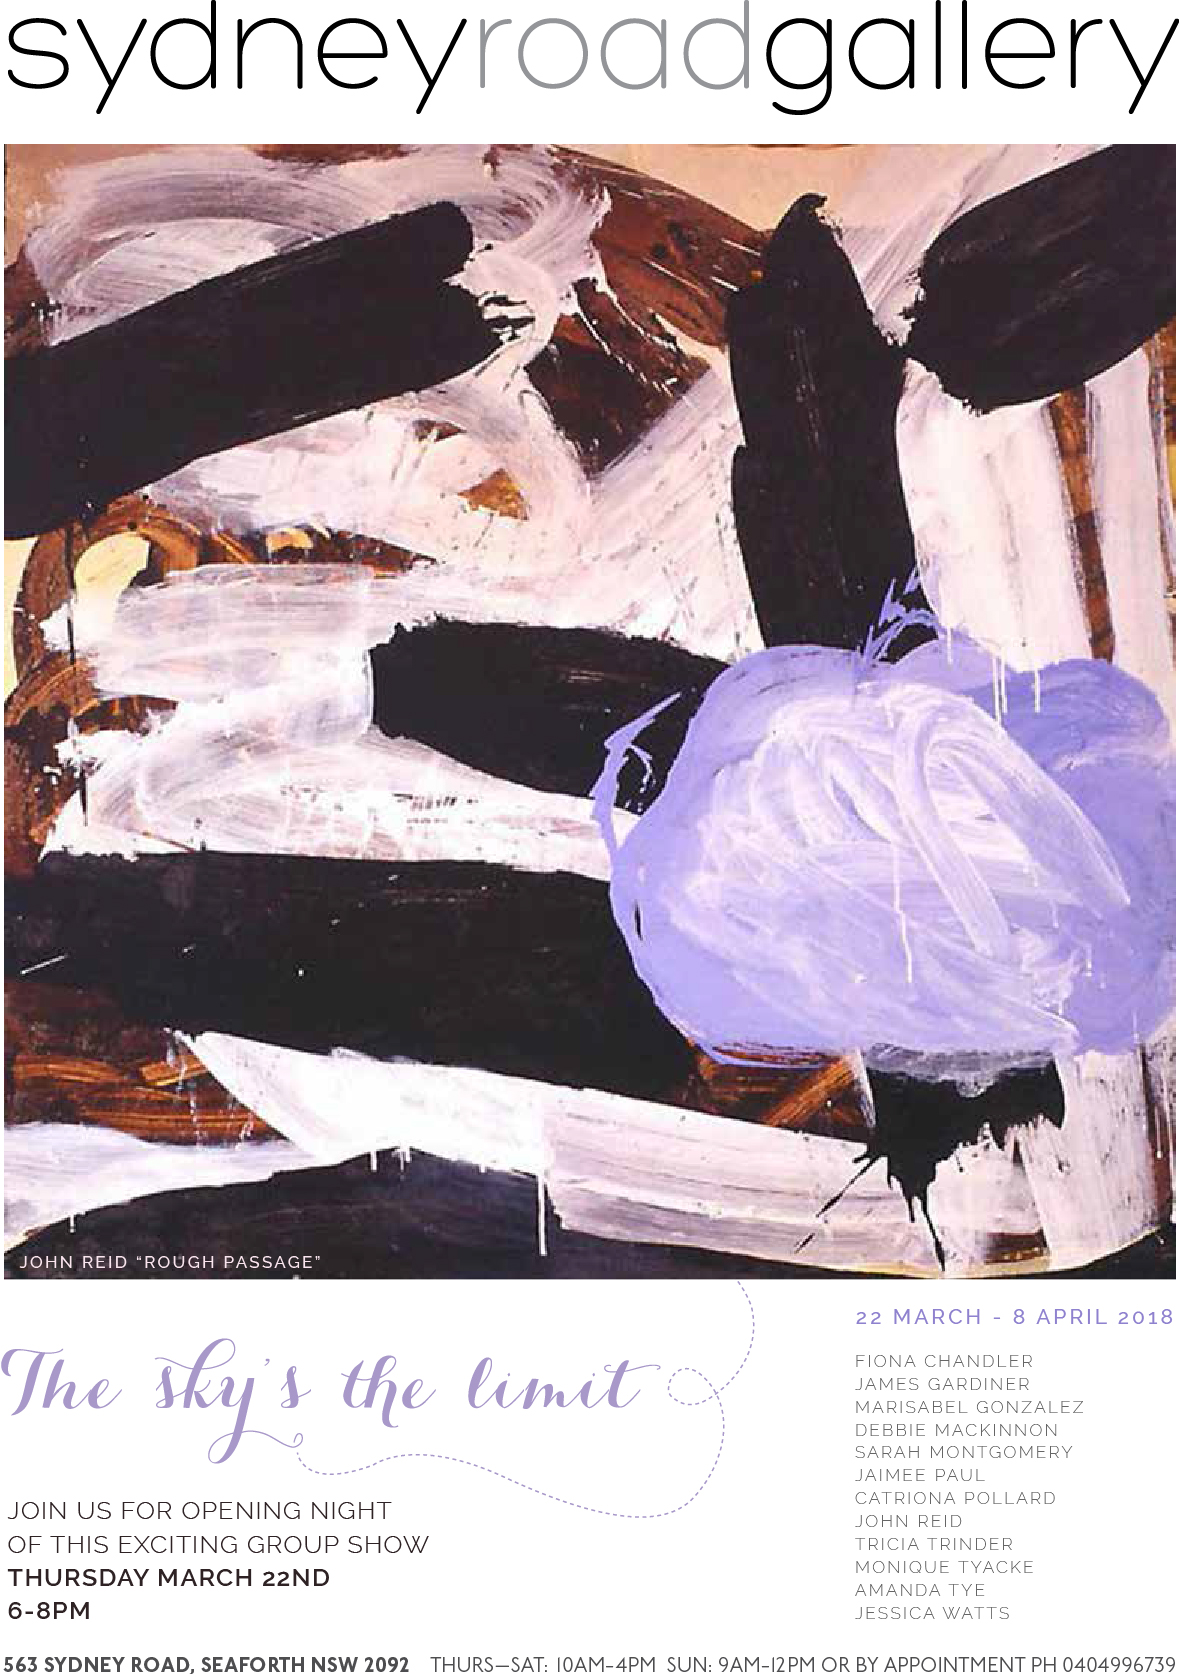 The Sky's the limit - A Group Show